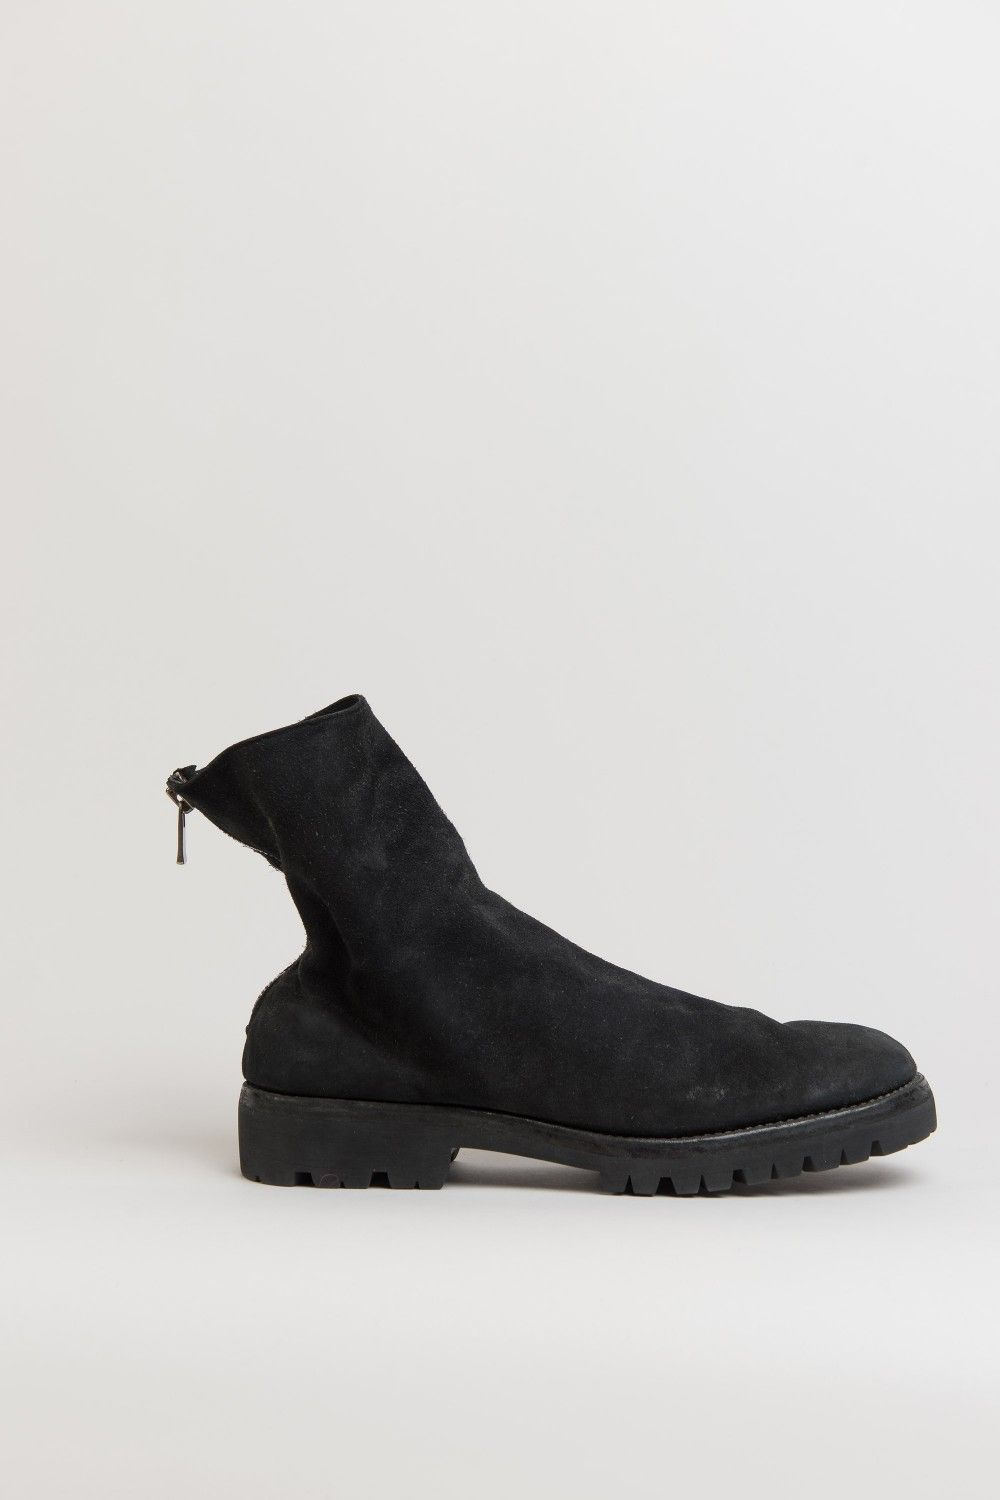 Guidiblack 796v baby buffalo reverse leather back zip boots with vibram  rubber sole